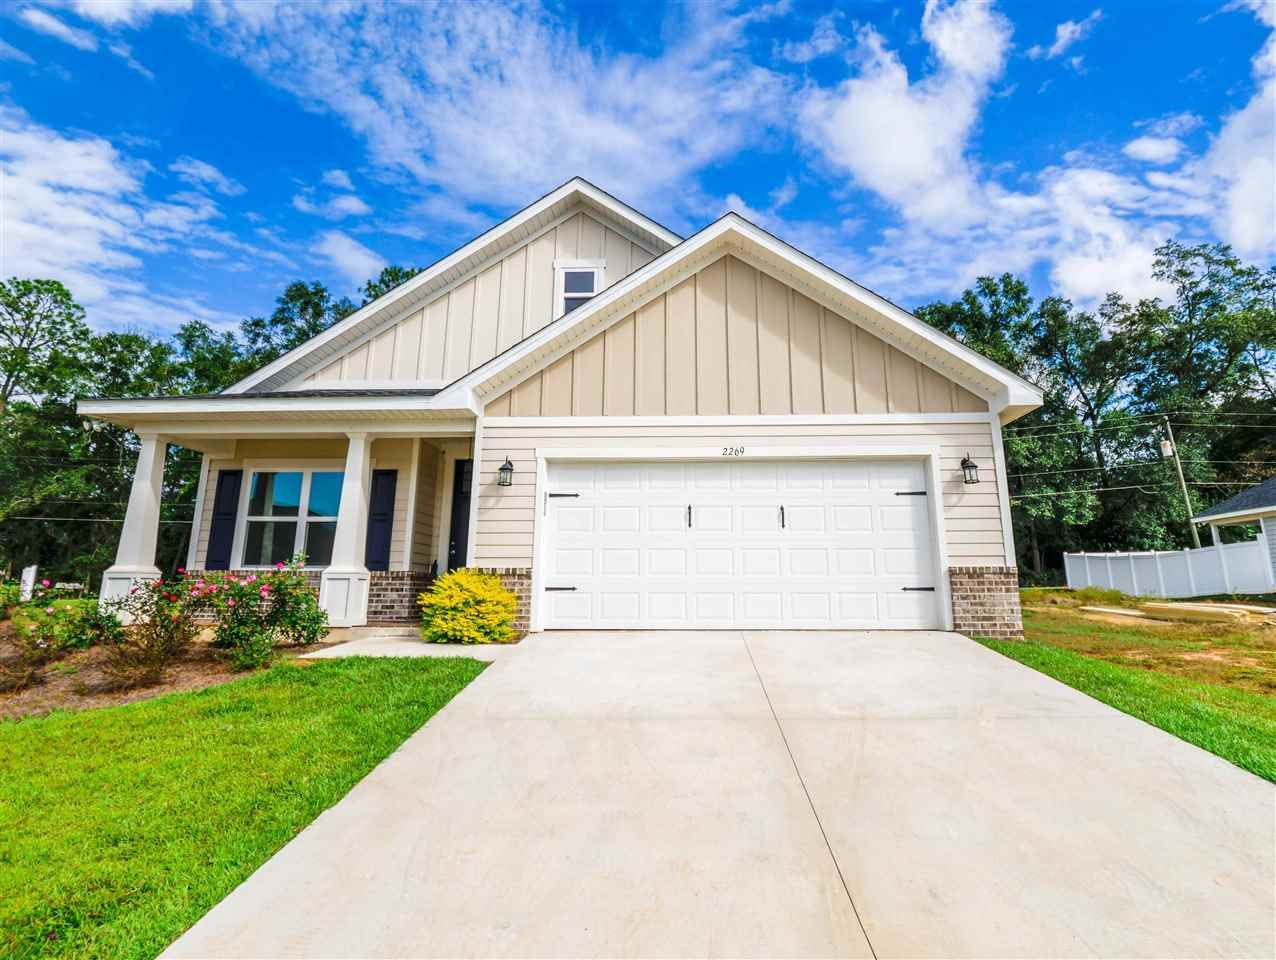 2261 Lexington Parc Drive, Tallahassee, FL 32311 - MLS#: 327005